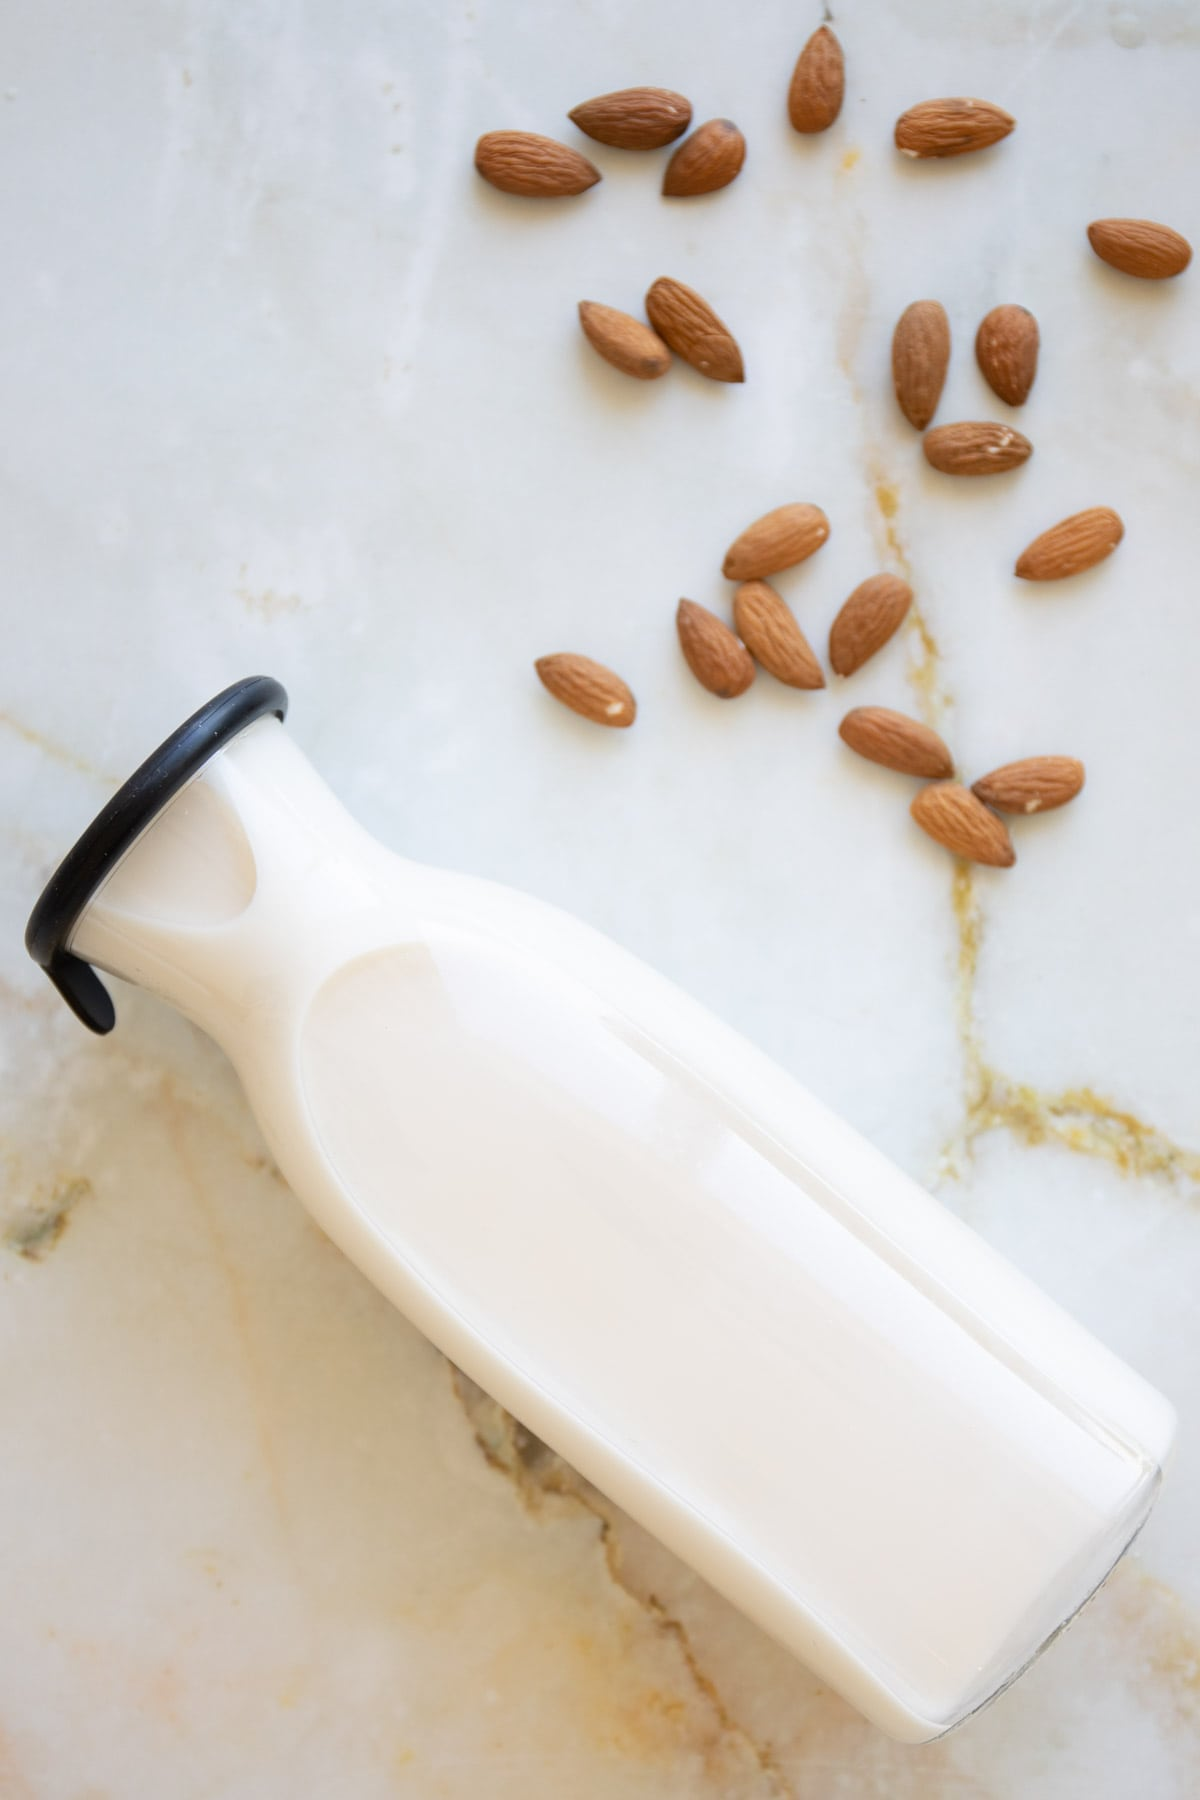 almond milk in a glass container